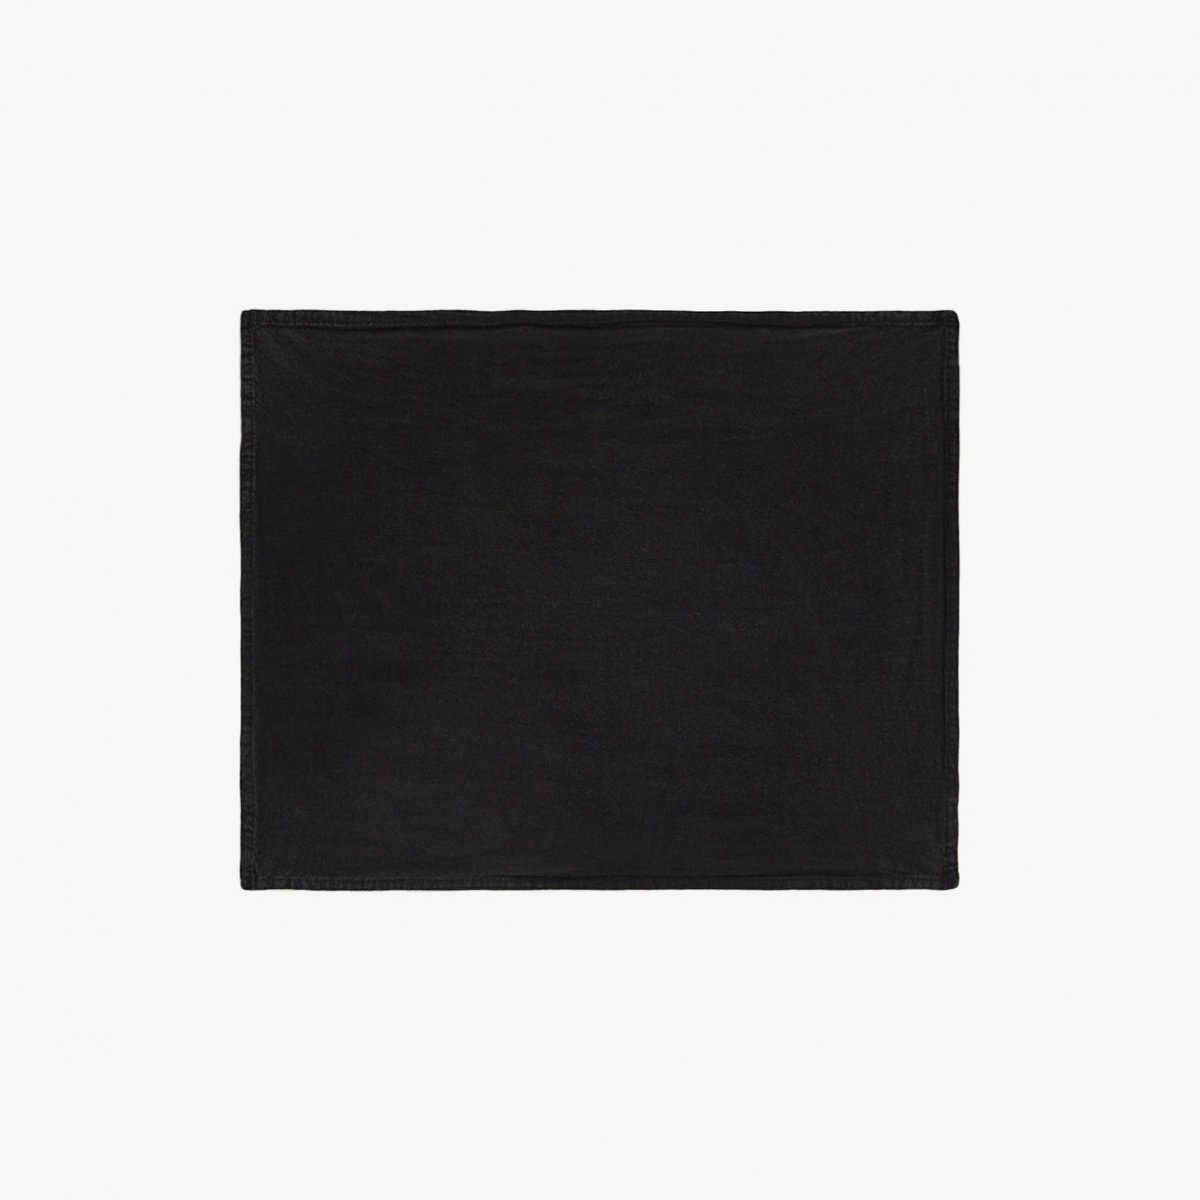 Simple Linen Placemat, black.